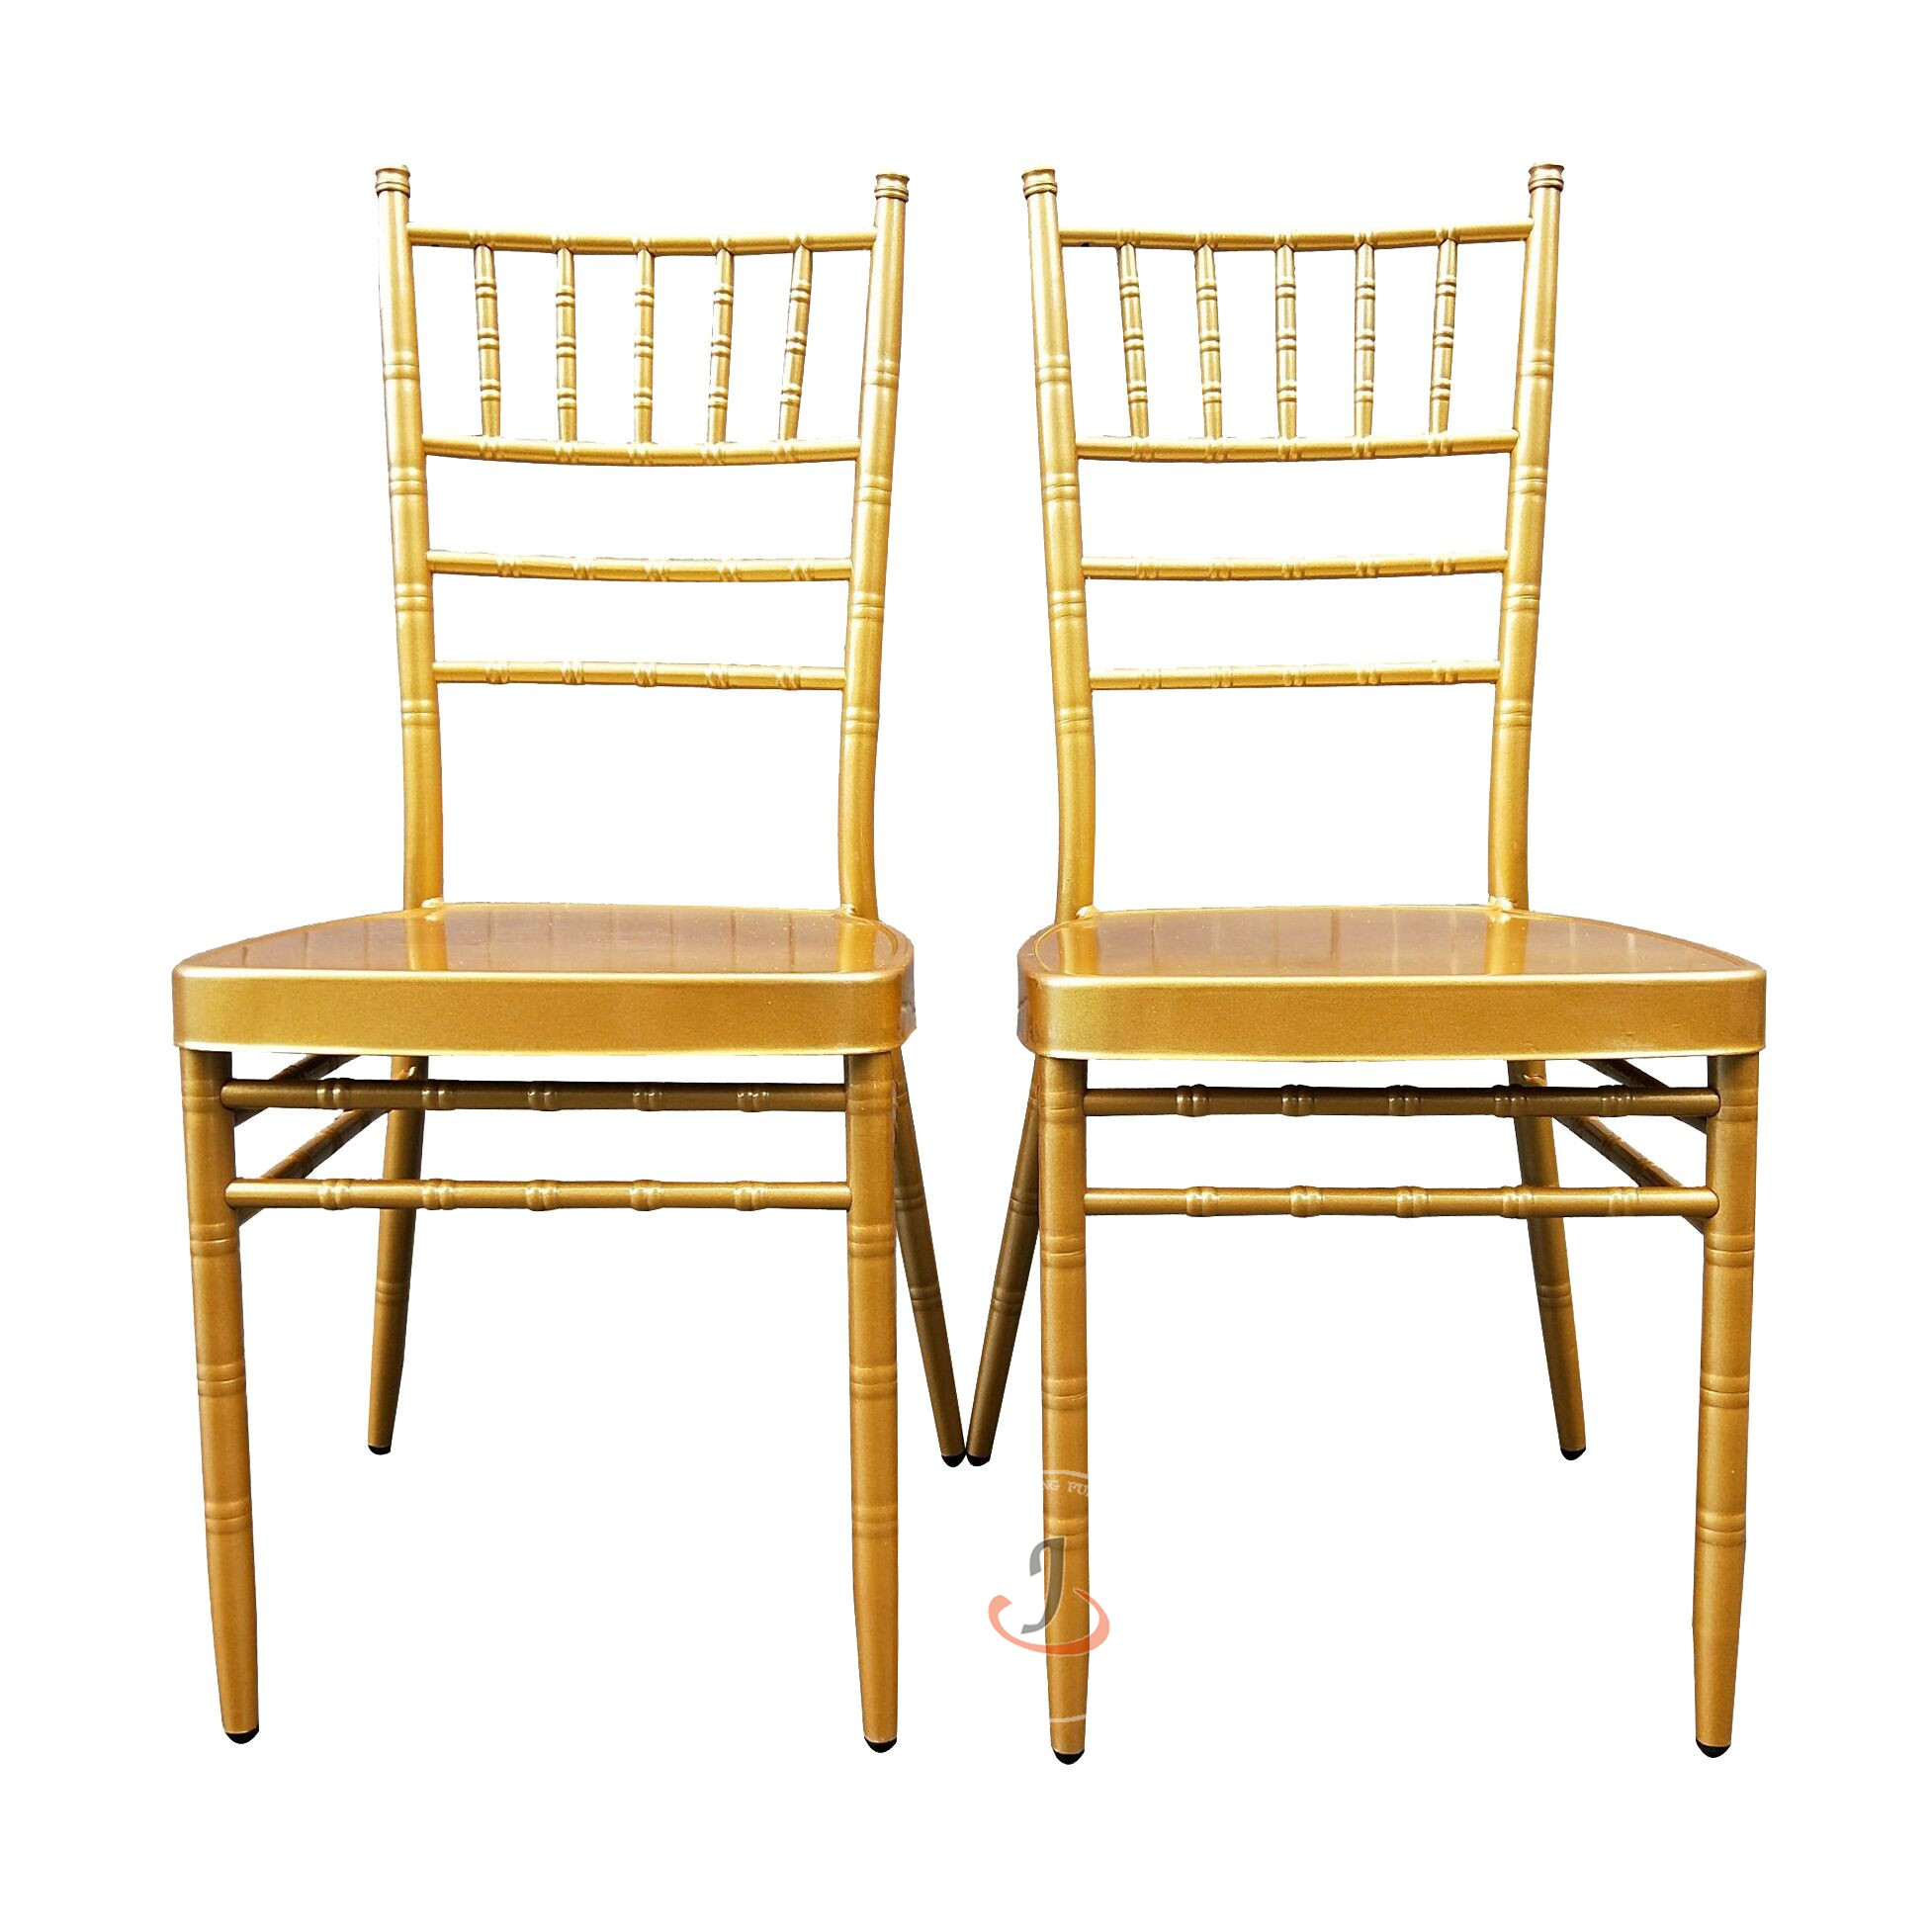 Wholesale Discount Church Furniture Chairs Sale -